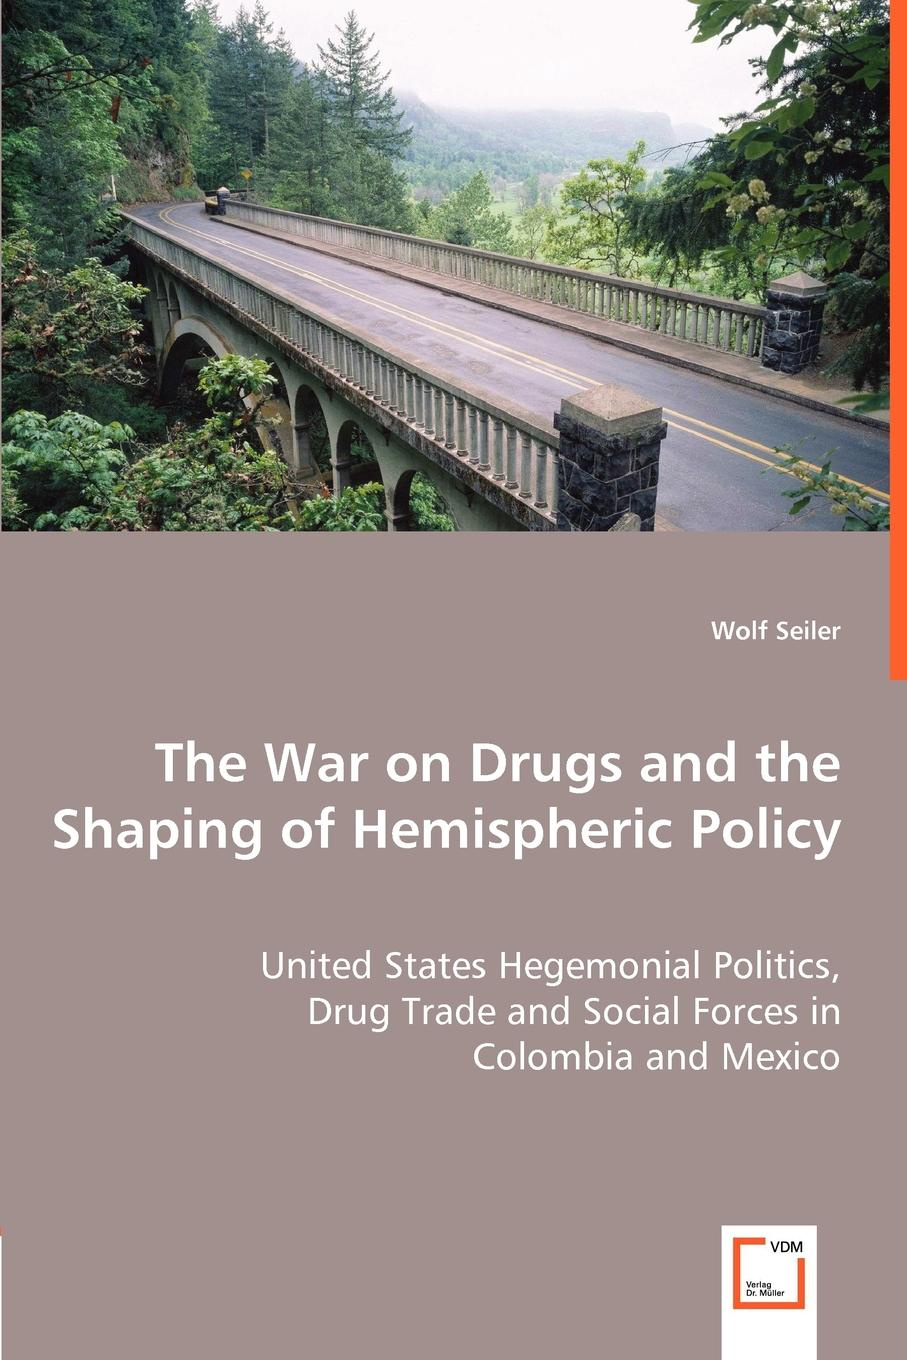 Wolf Seiler The War on Drugs and the Shaping of Hemispheric Policy - United States Hegemonial Politics, bromley american hegemony and world oil